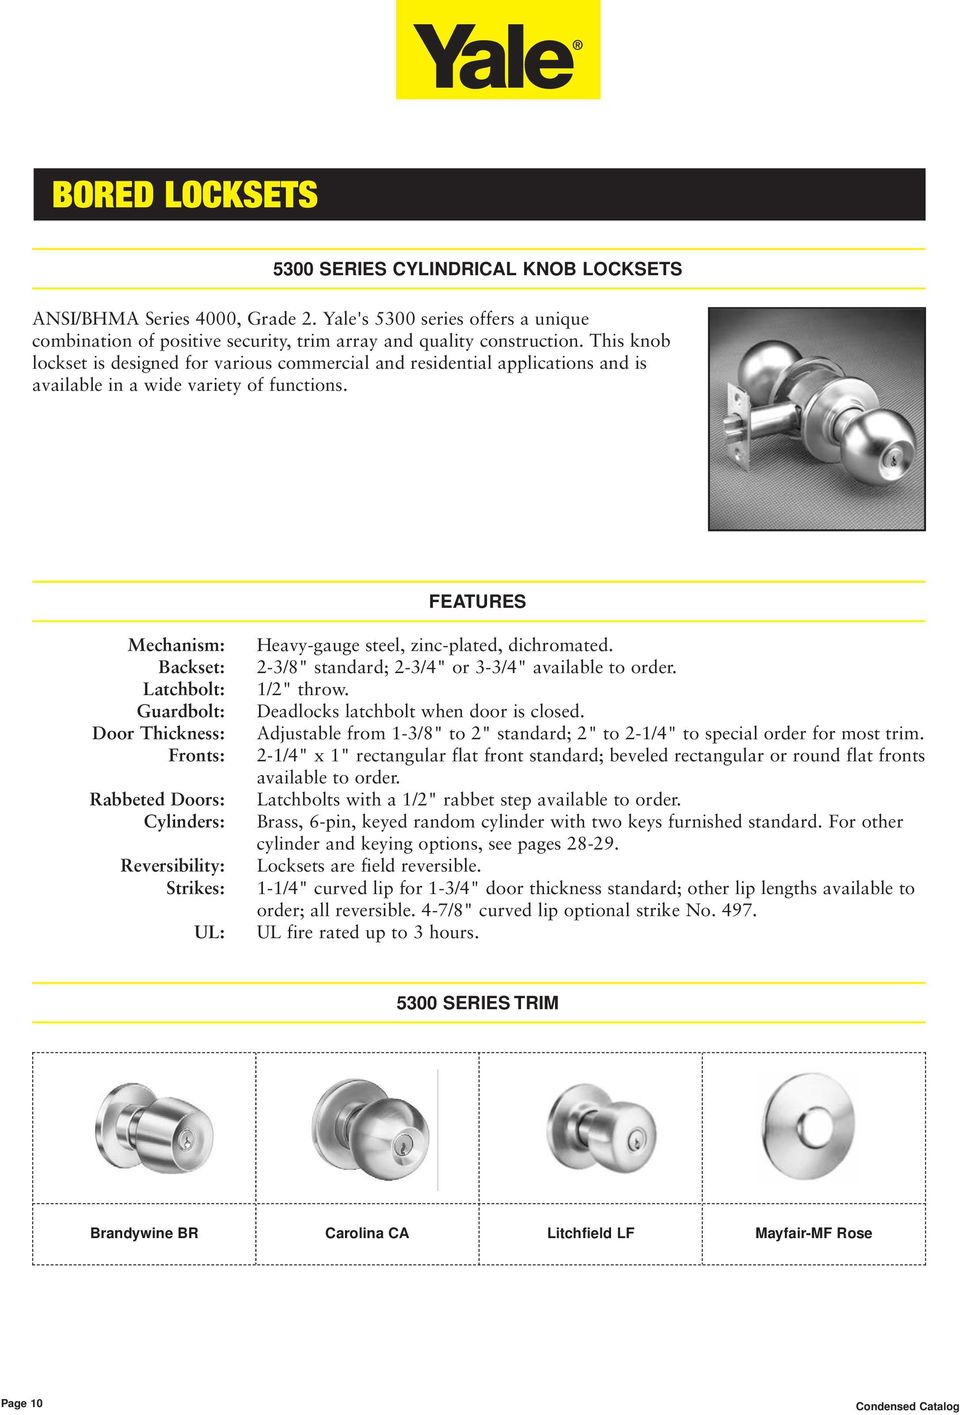 Yale Commercial Locks Hardware Condensed Catalog Exits Door Closer Hampton Nho Features Mechanism Backset Latchbolt Guardbolt Thickness Fronts Rabbeted Doors